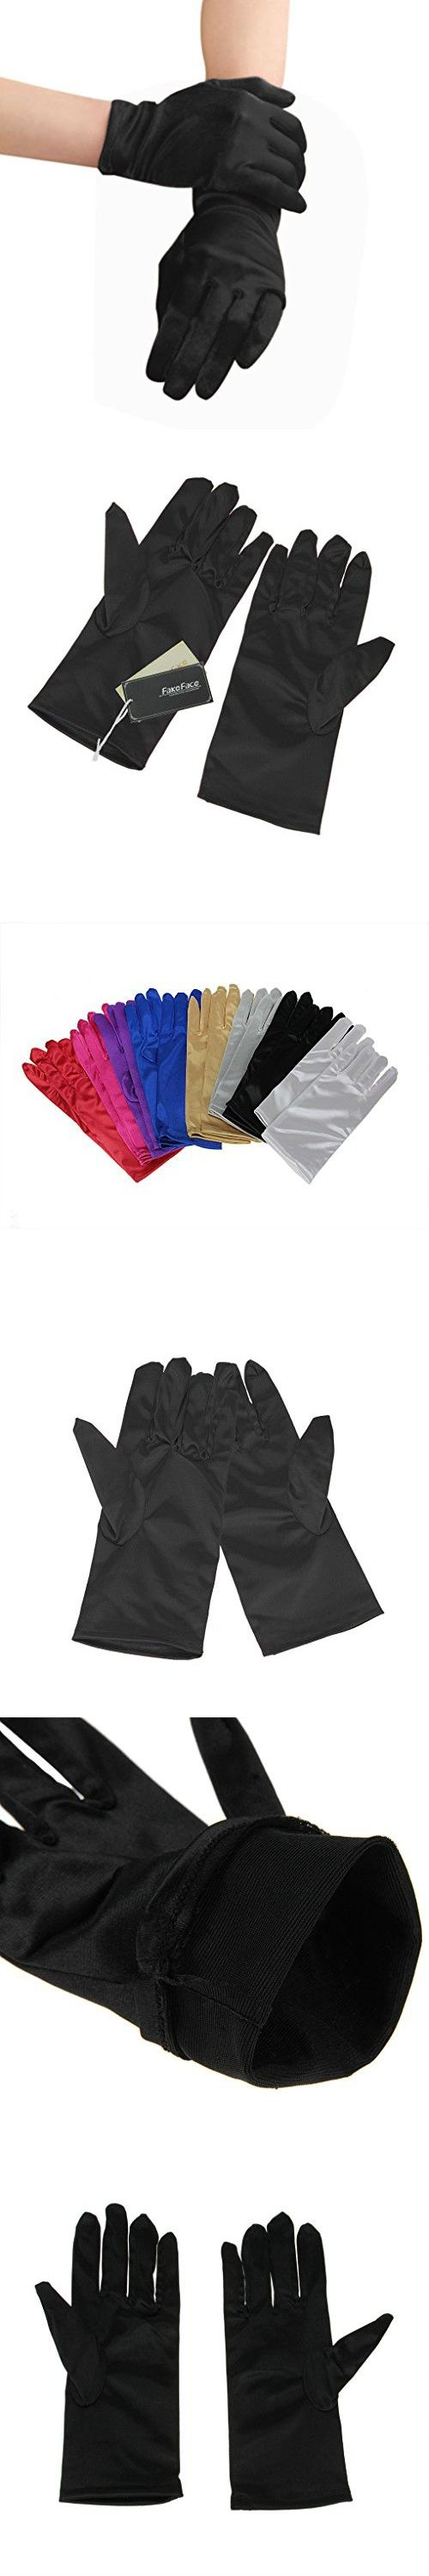 Ladies leather cycling gloves - Women Ladies Elegant Full Fingered Plain Satin Short Gloves Evening Prom Ball Wedding Outdoor Cycling